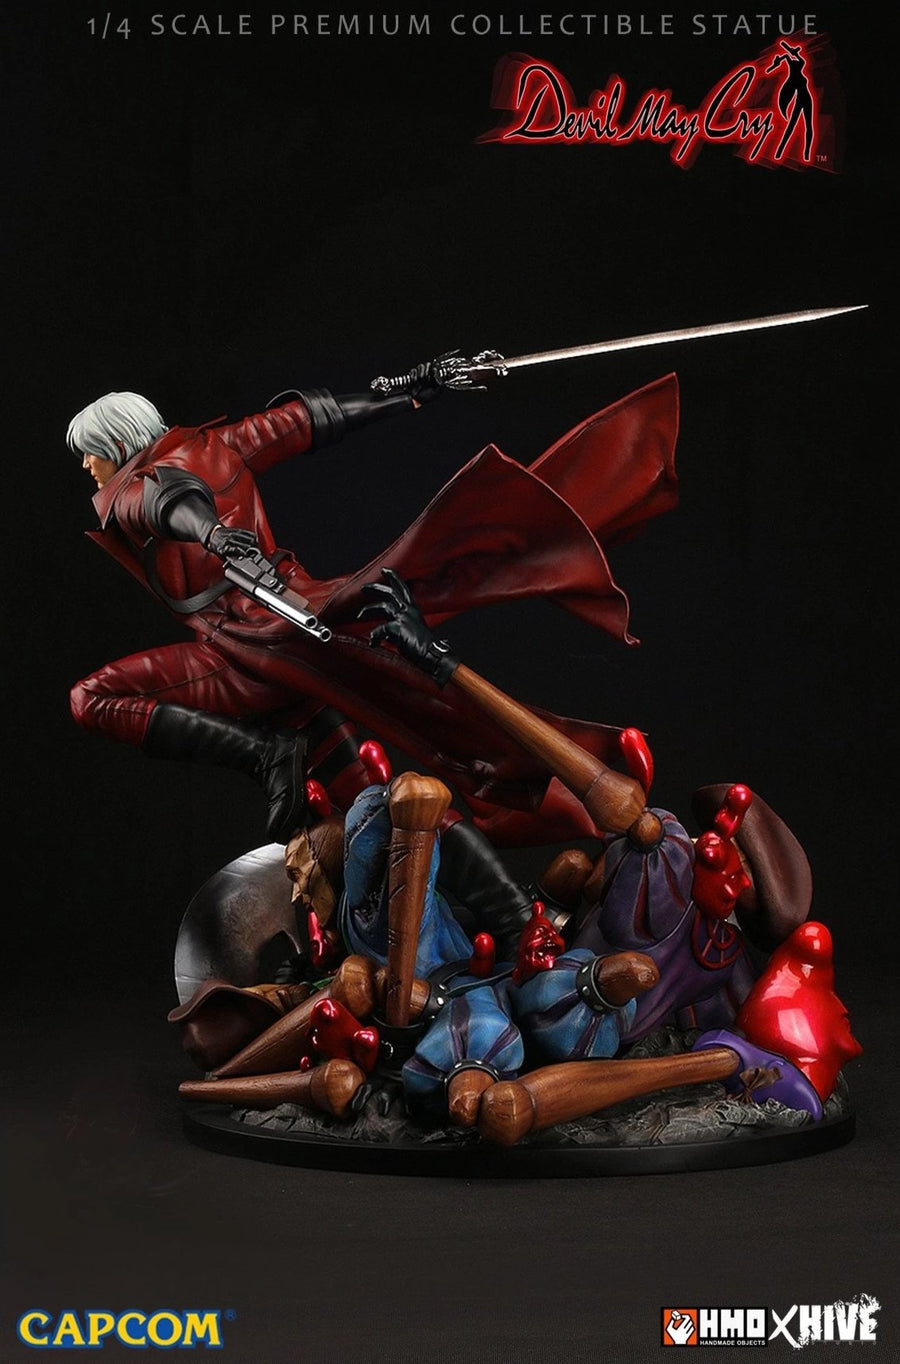 Devil May Cry DANTE 1/4 Scale Statue by HMO ( Hand Made Object )